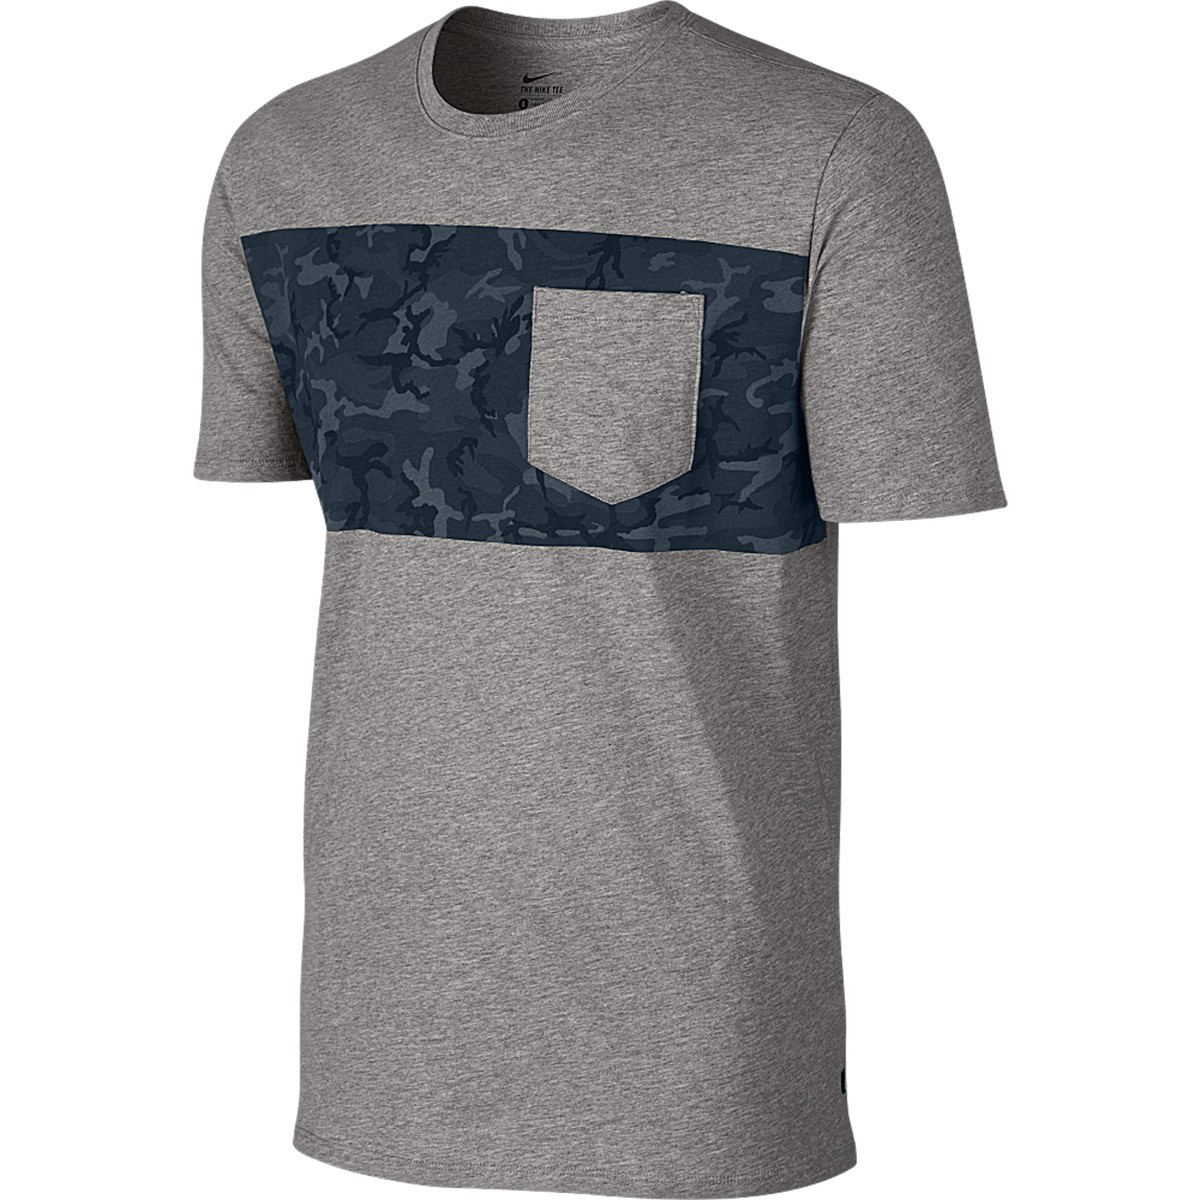 Nike SB Camo Pocket T-Shirt - Dark Grey Heather/Armory Navy